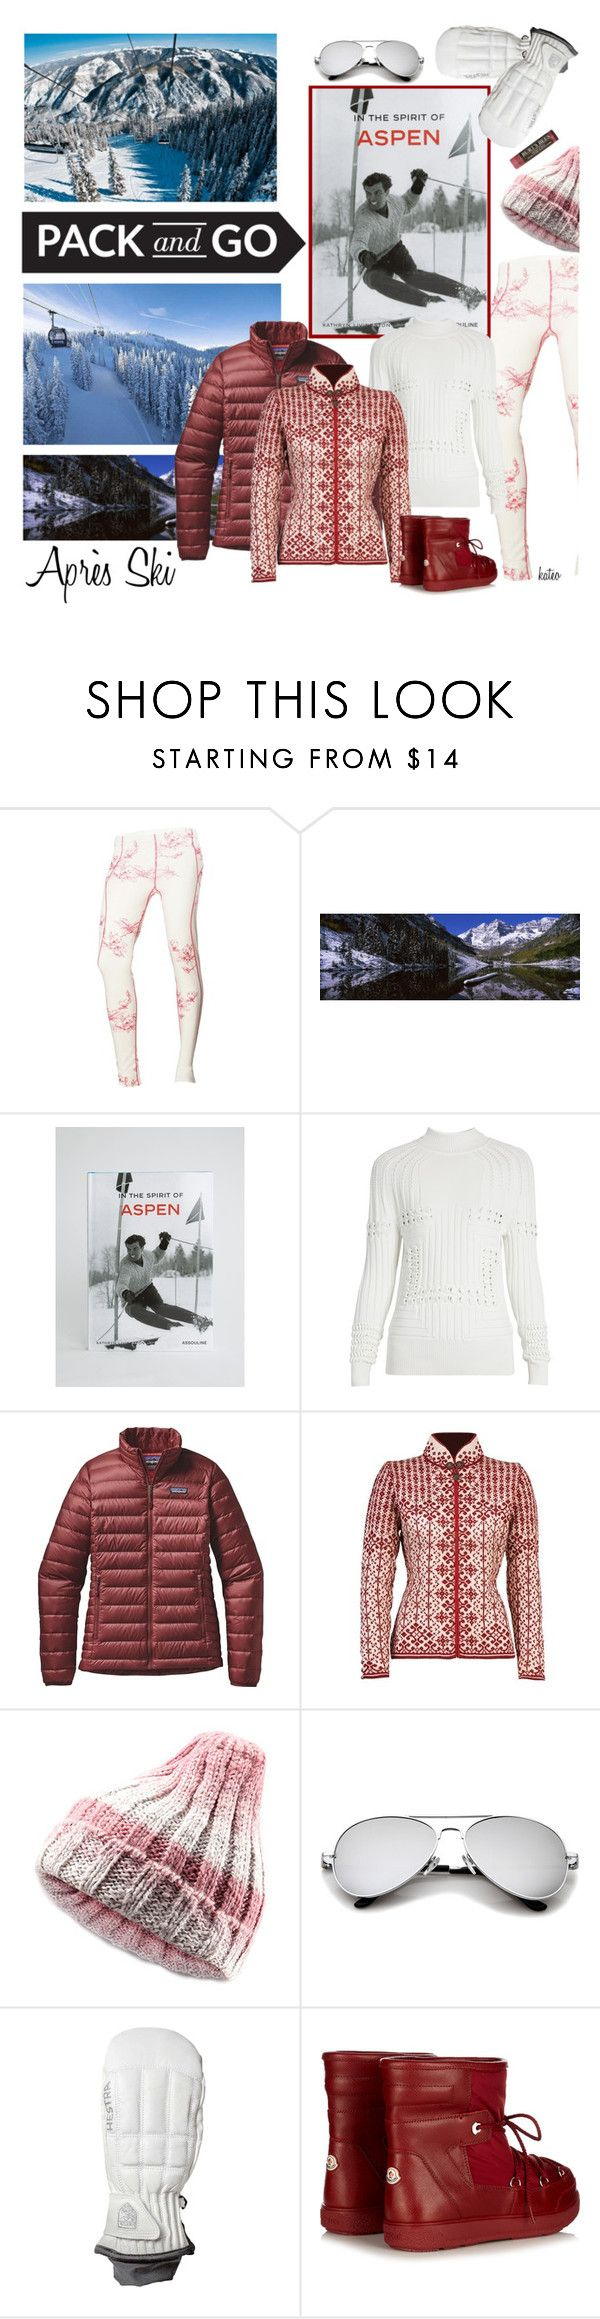 """""""Ski Bunny"""" by kateo ❤ liked on Polyvore featuring Helly Hansen, Assouline Publishing, Mary Katrantzou, Patagonia, Dale of Norway, Hestra, Moncler, Packandgo and 6272"""